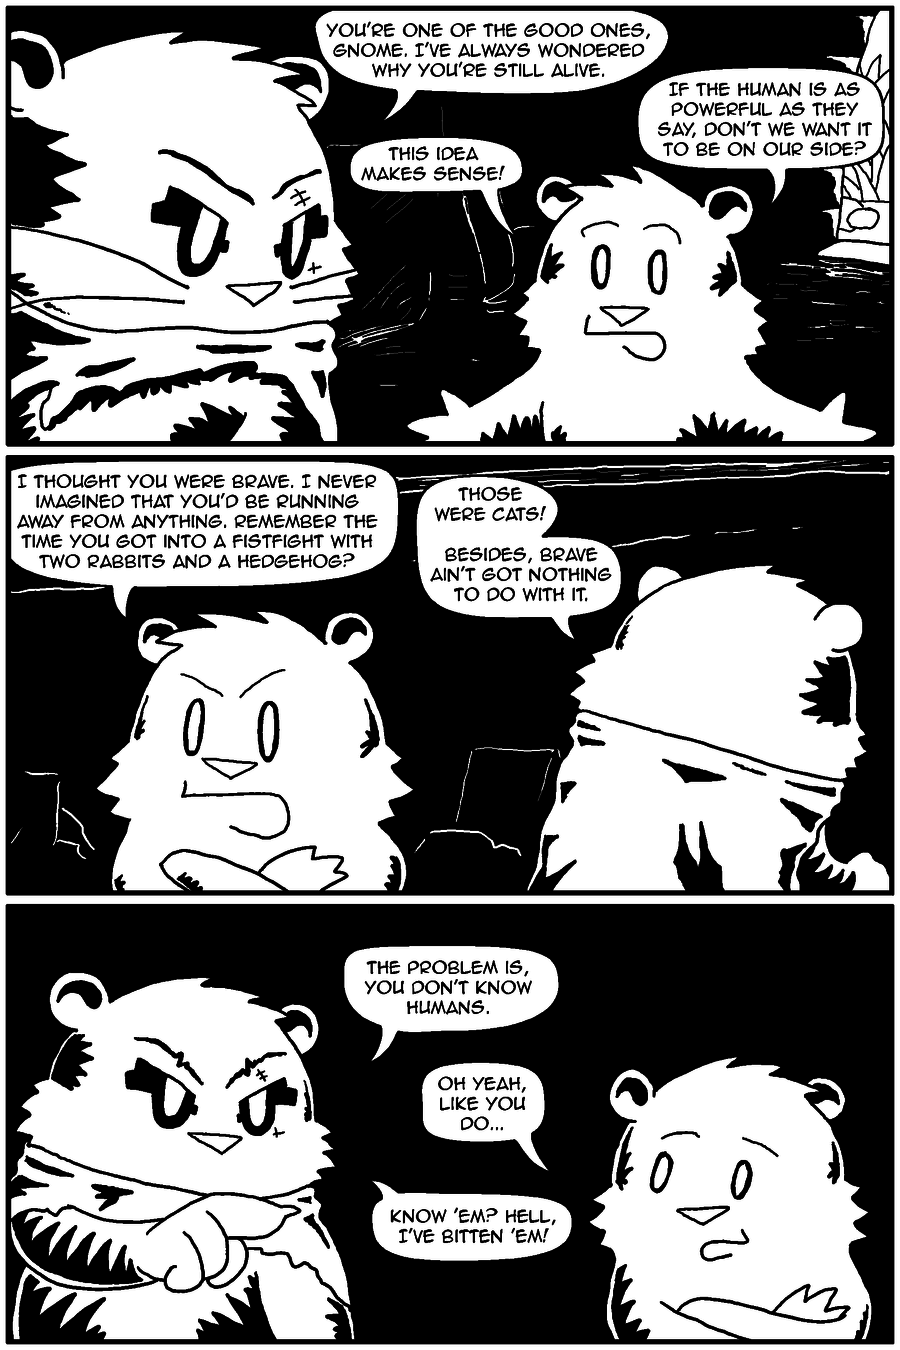 The Last Human Alive, Page 11